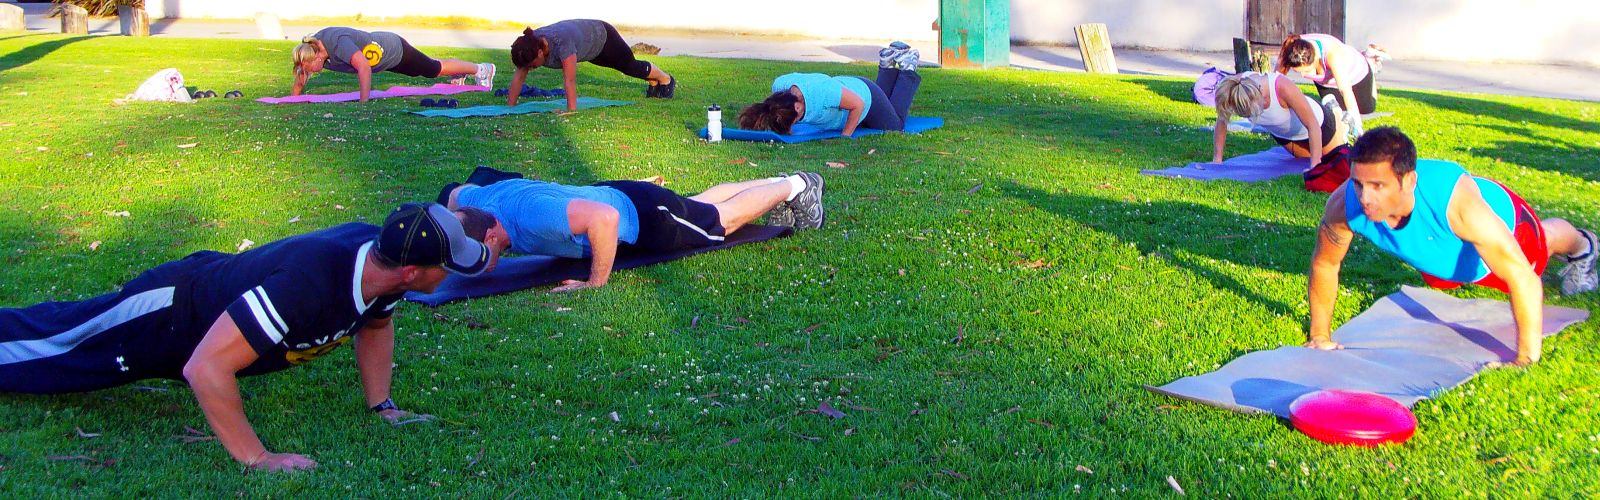 Long Beach CA Group Exercise - Group Training